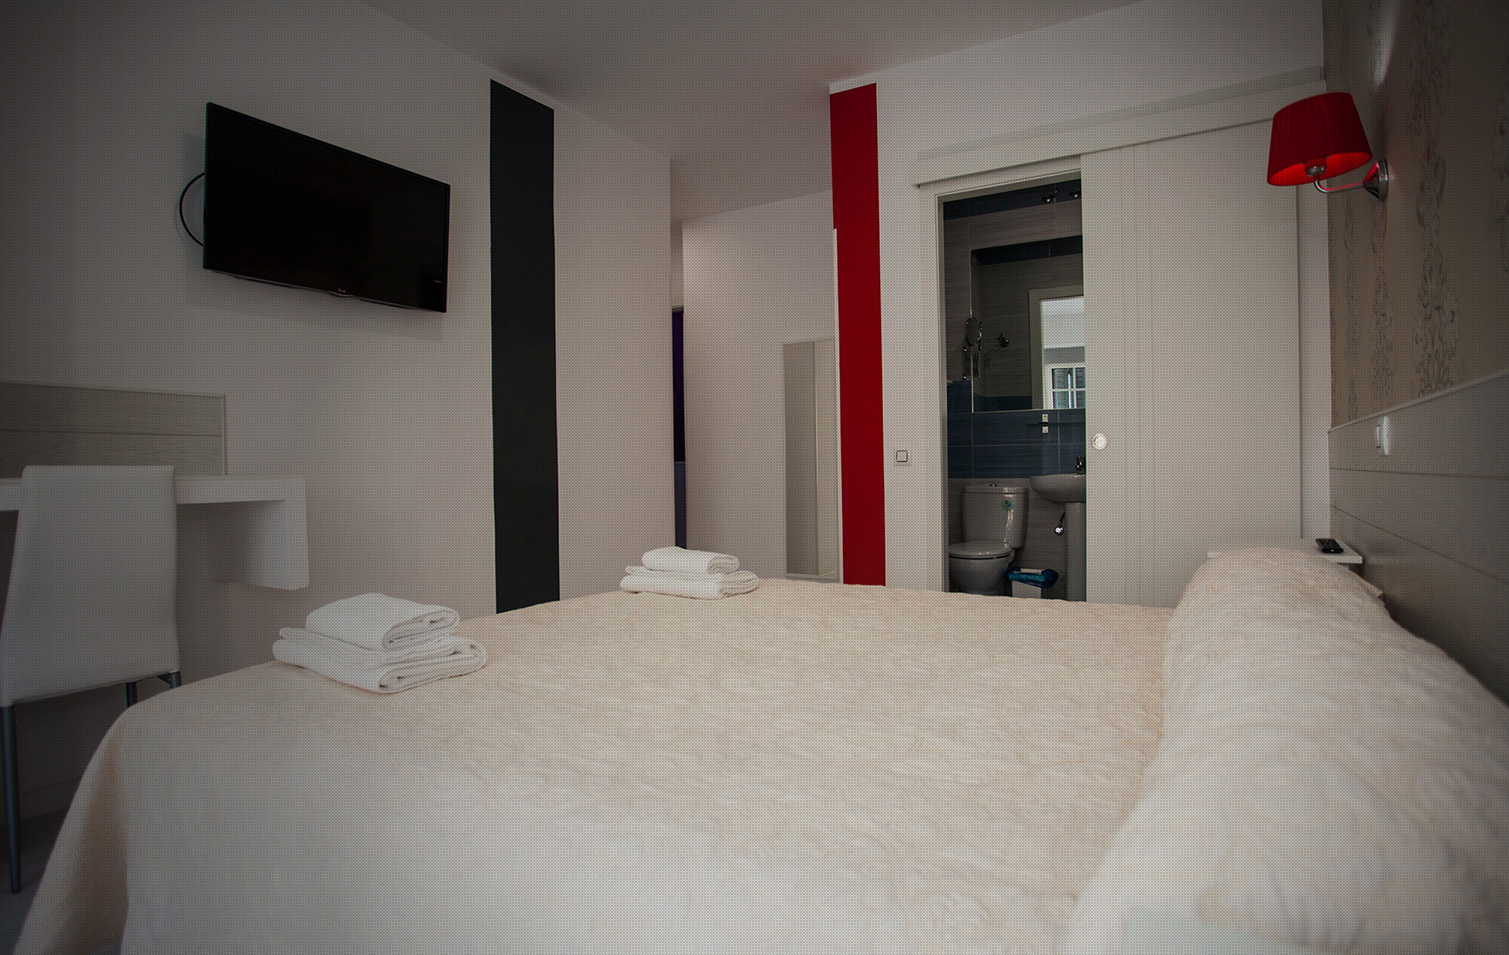 Hostal barato en Madrid